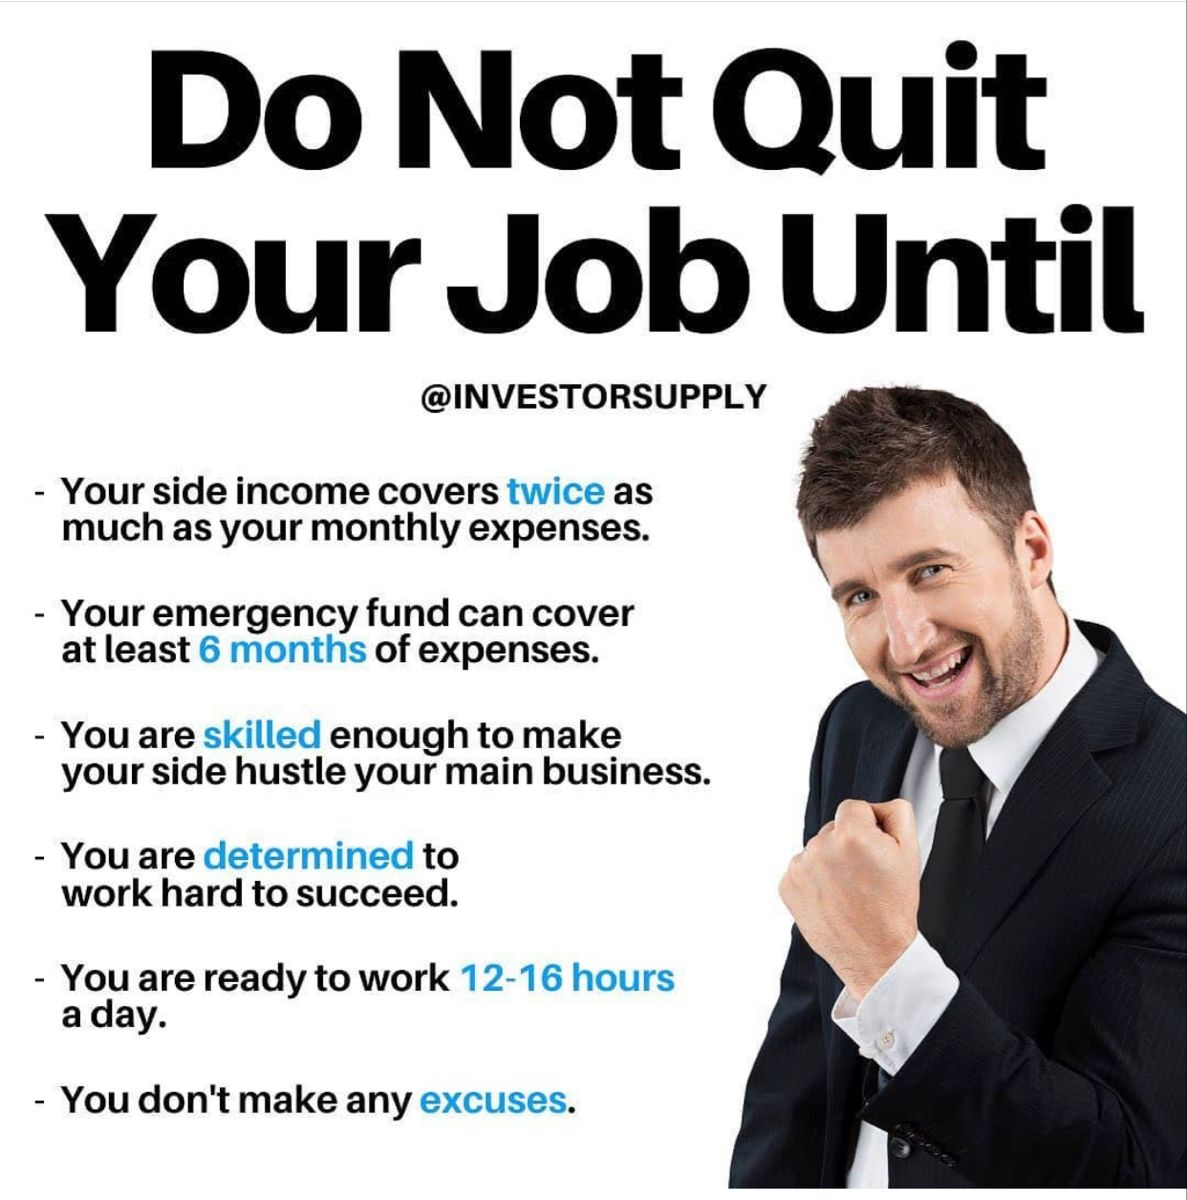 (Credit in pic) Don't quite your job until...